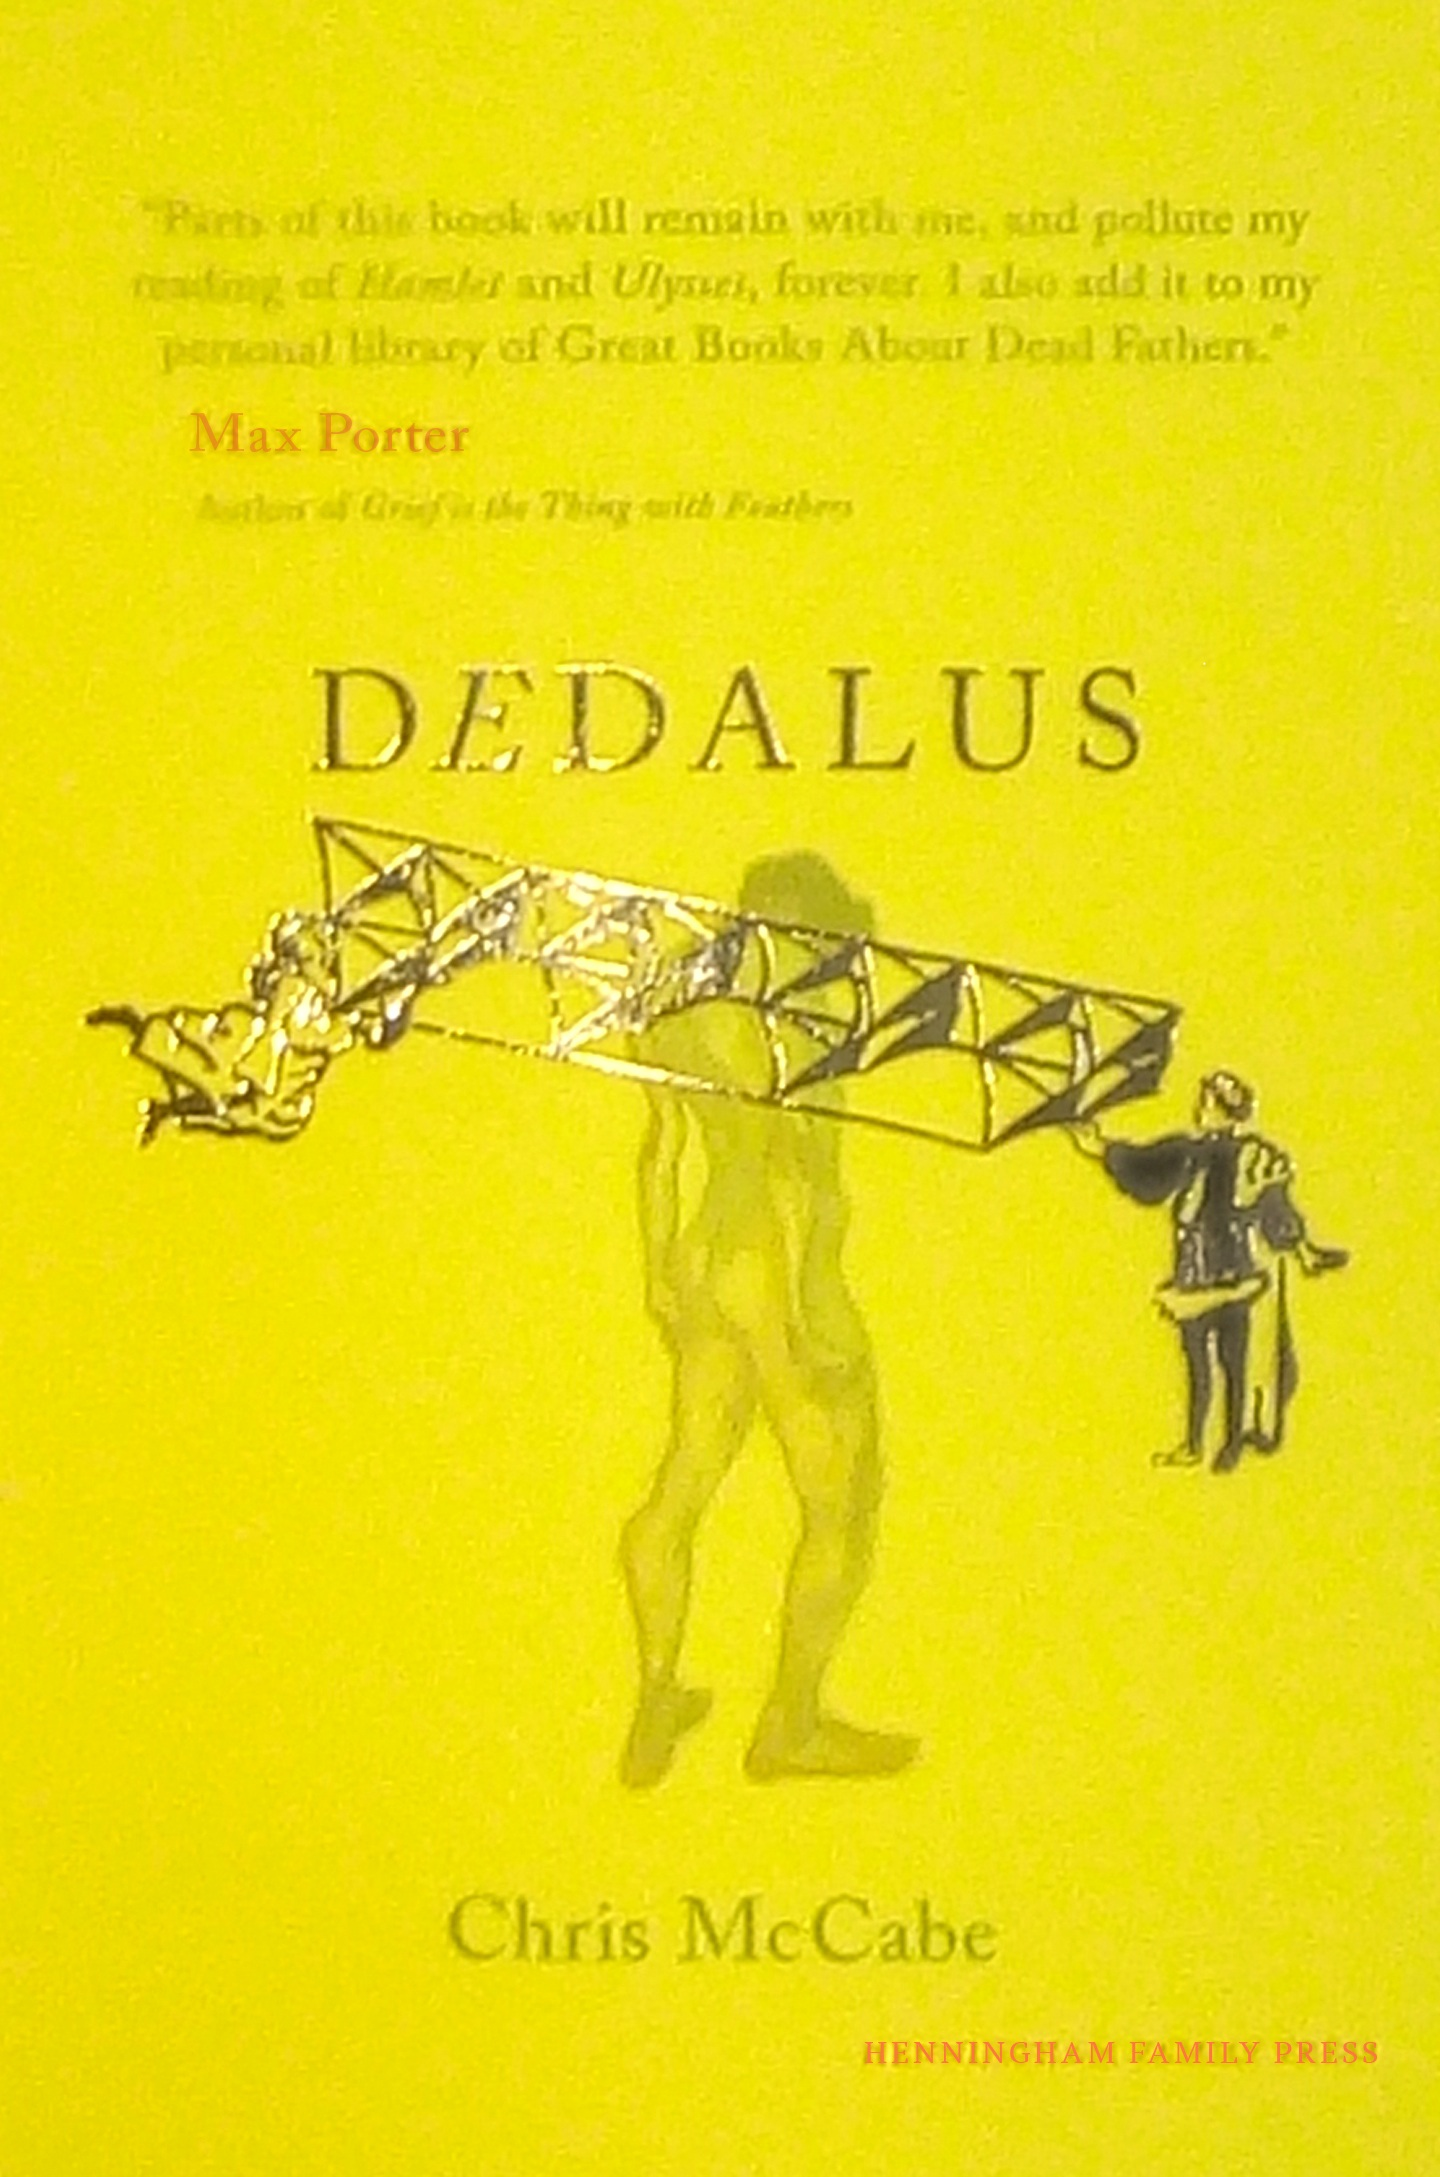 Dedalus by Chris McCabe, Henningham Family Press